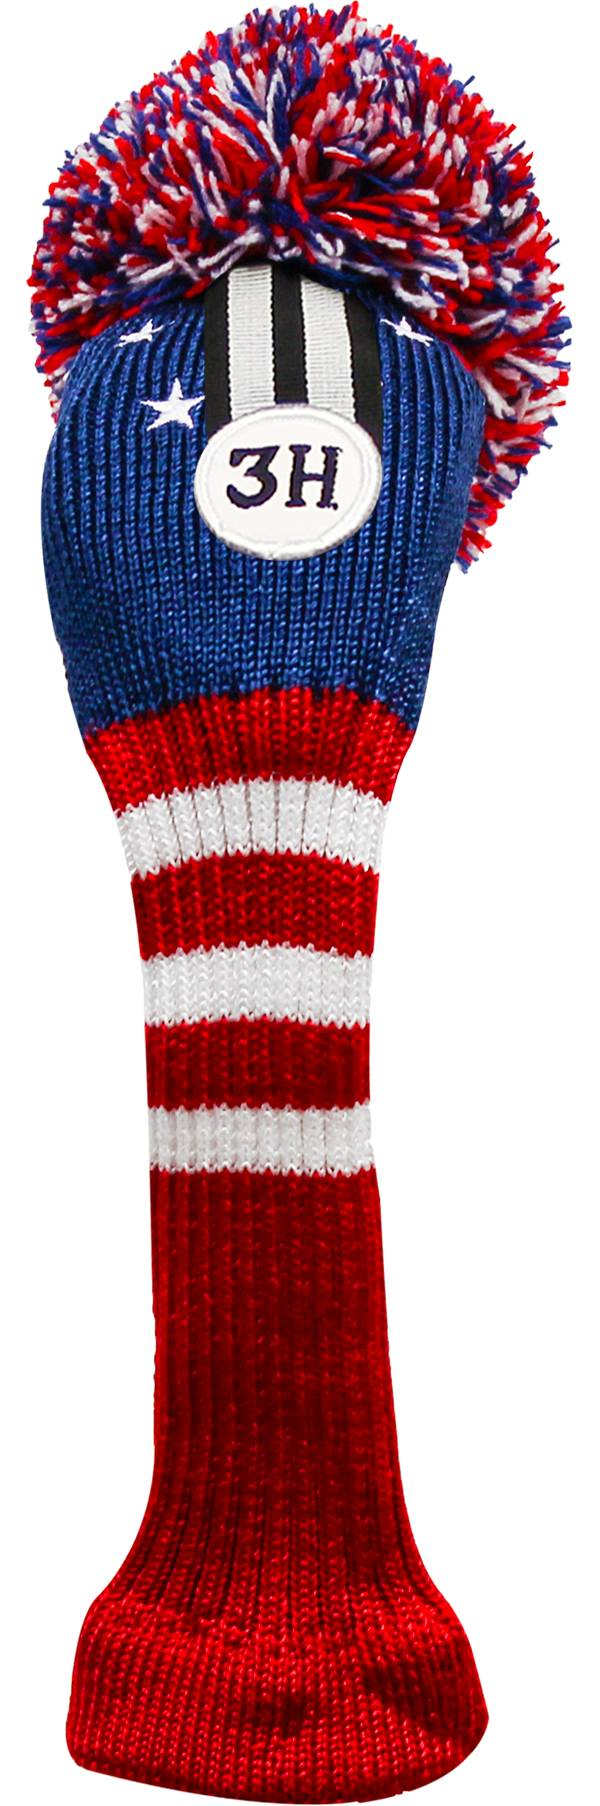 IZZO Patriot Vintage Hybrid Headcover product image